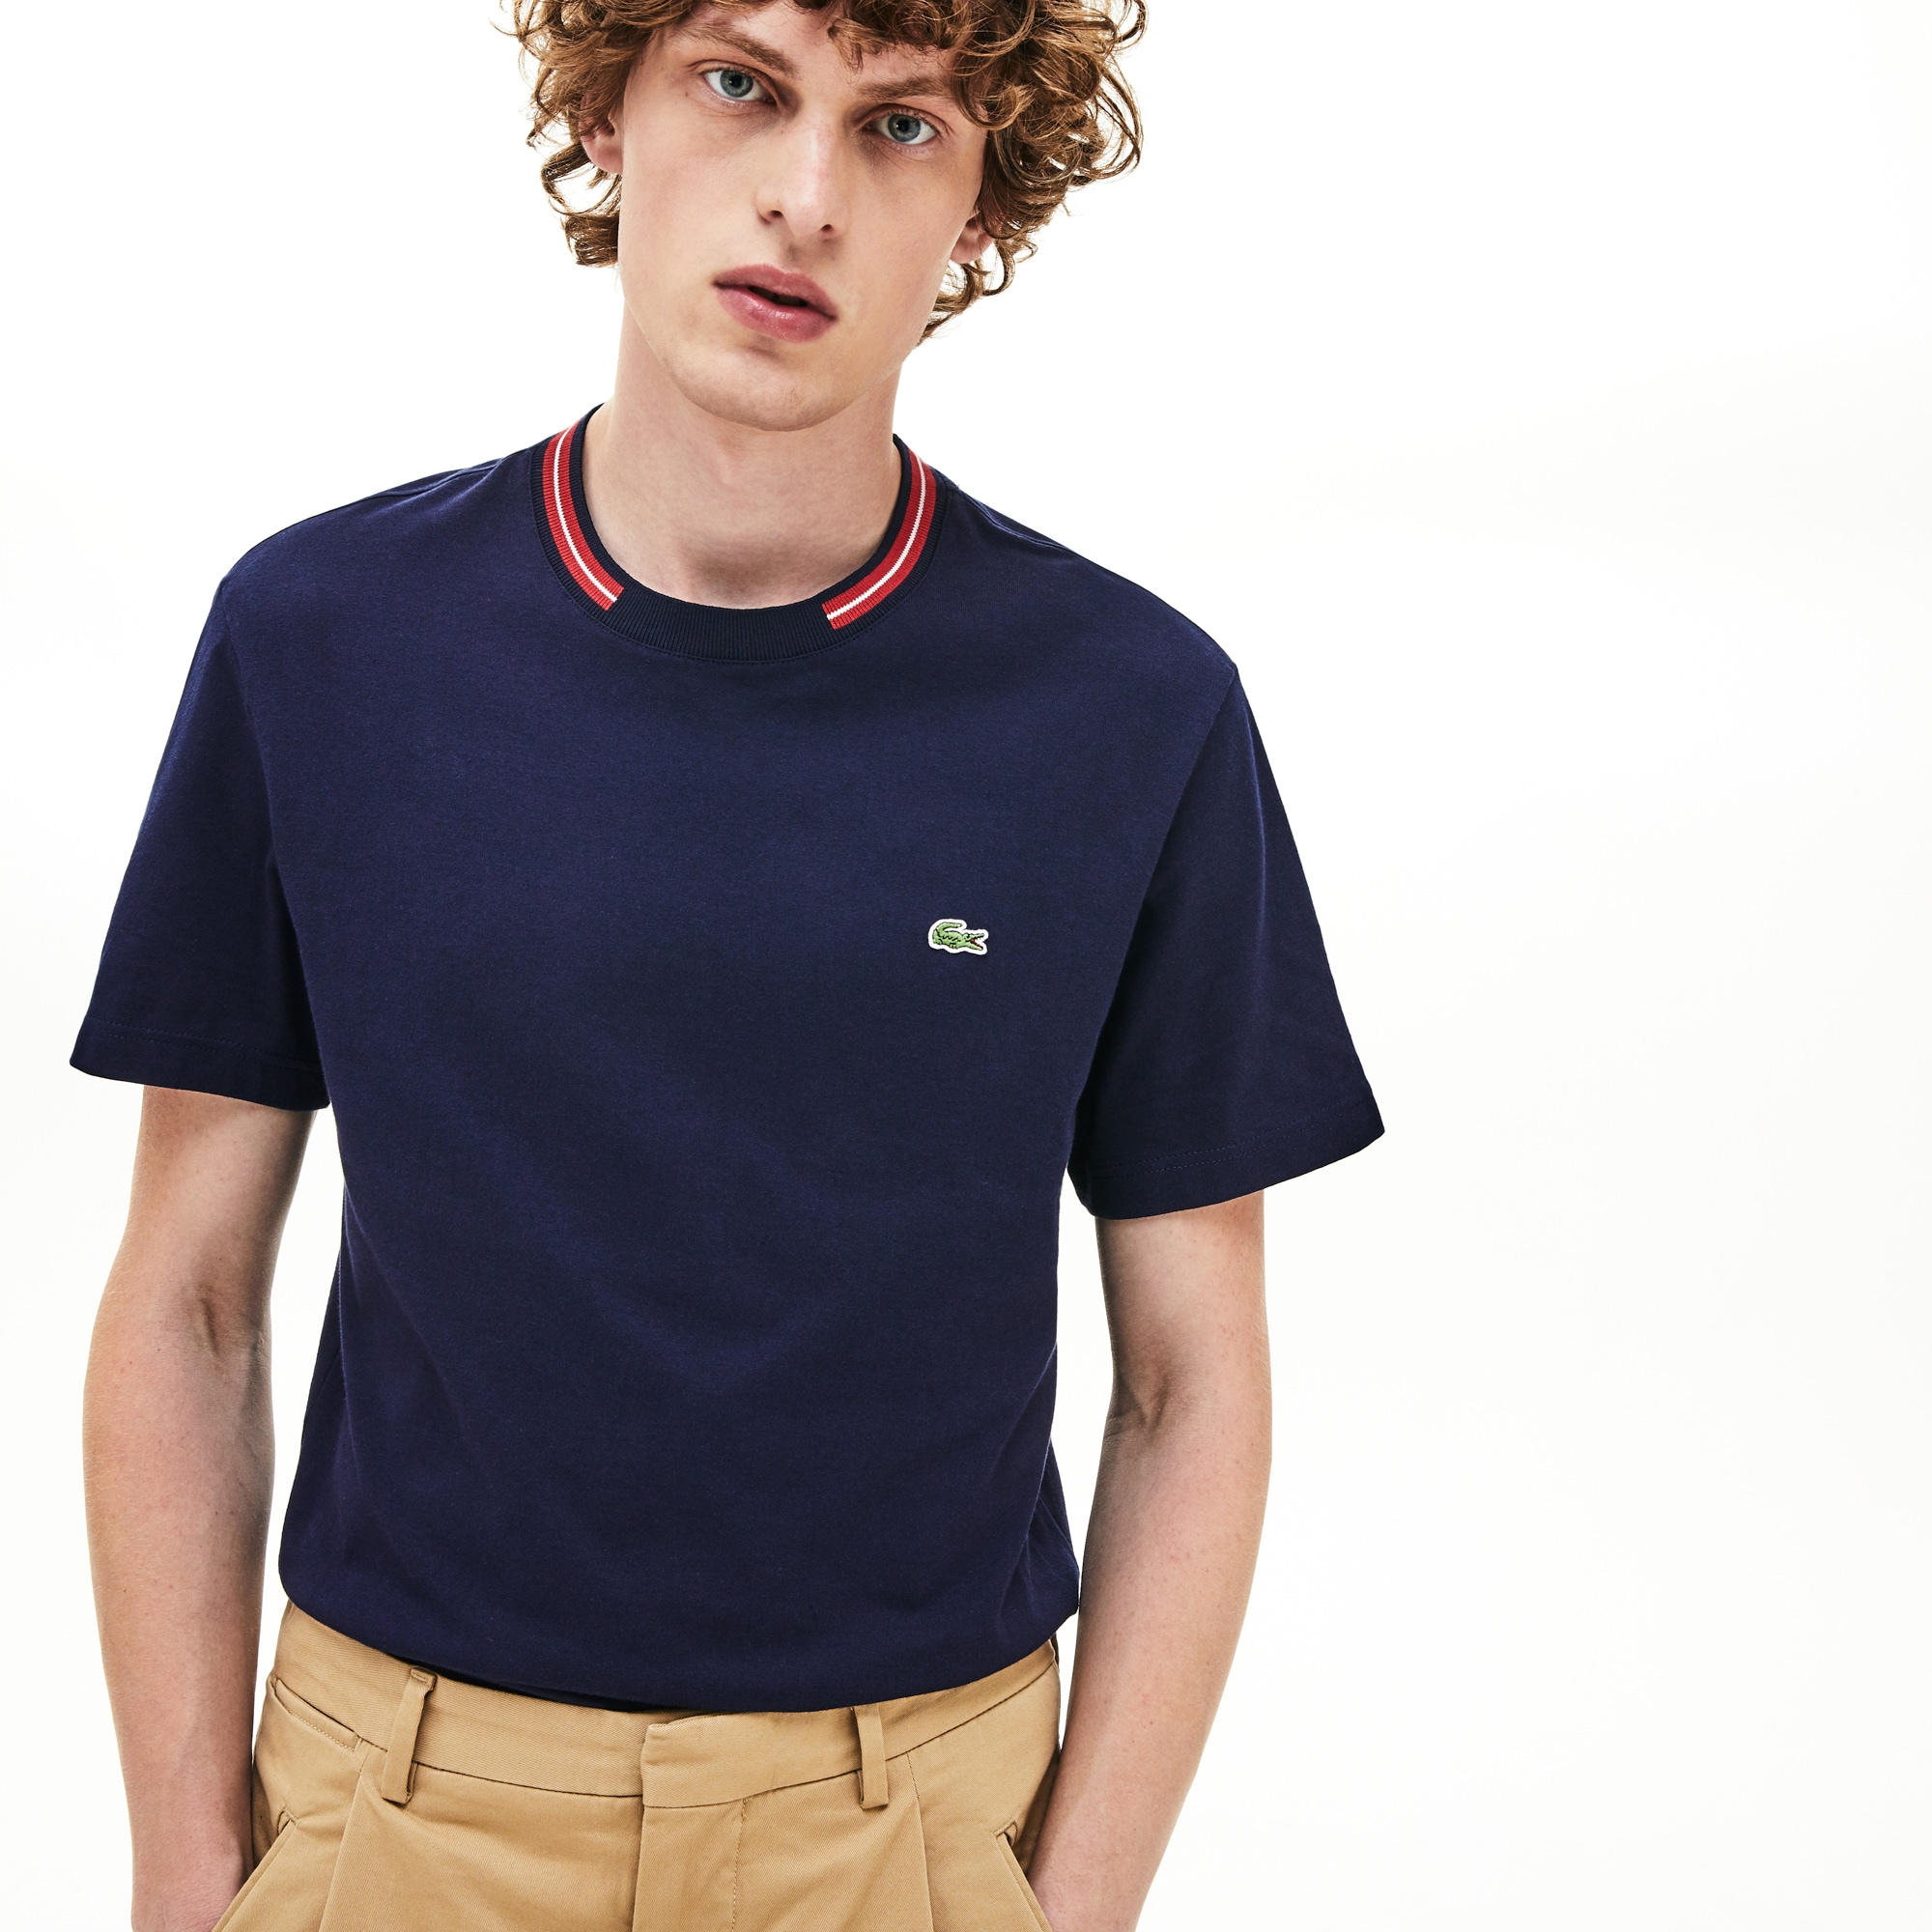 Lacoste Tops Men's Striped-Crewneck Cotton T-Shirt